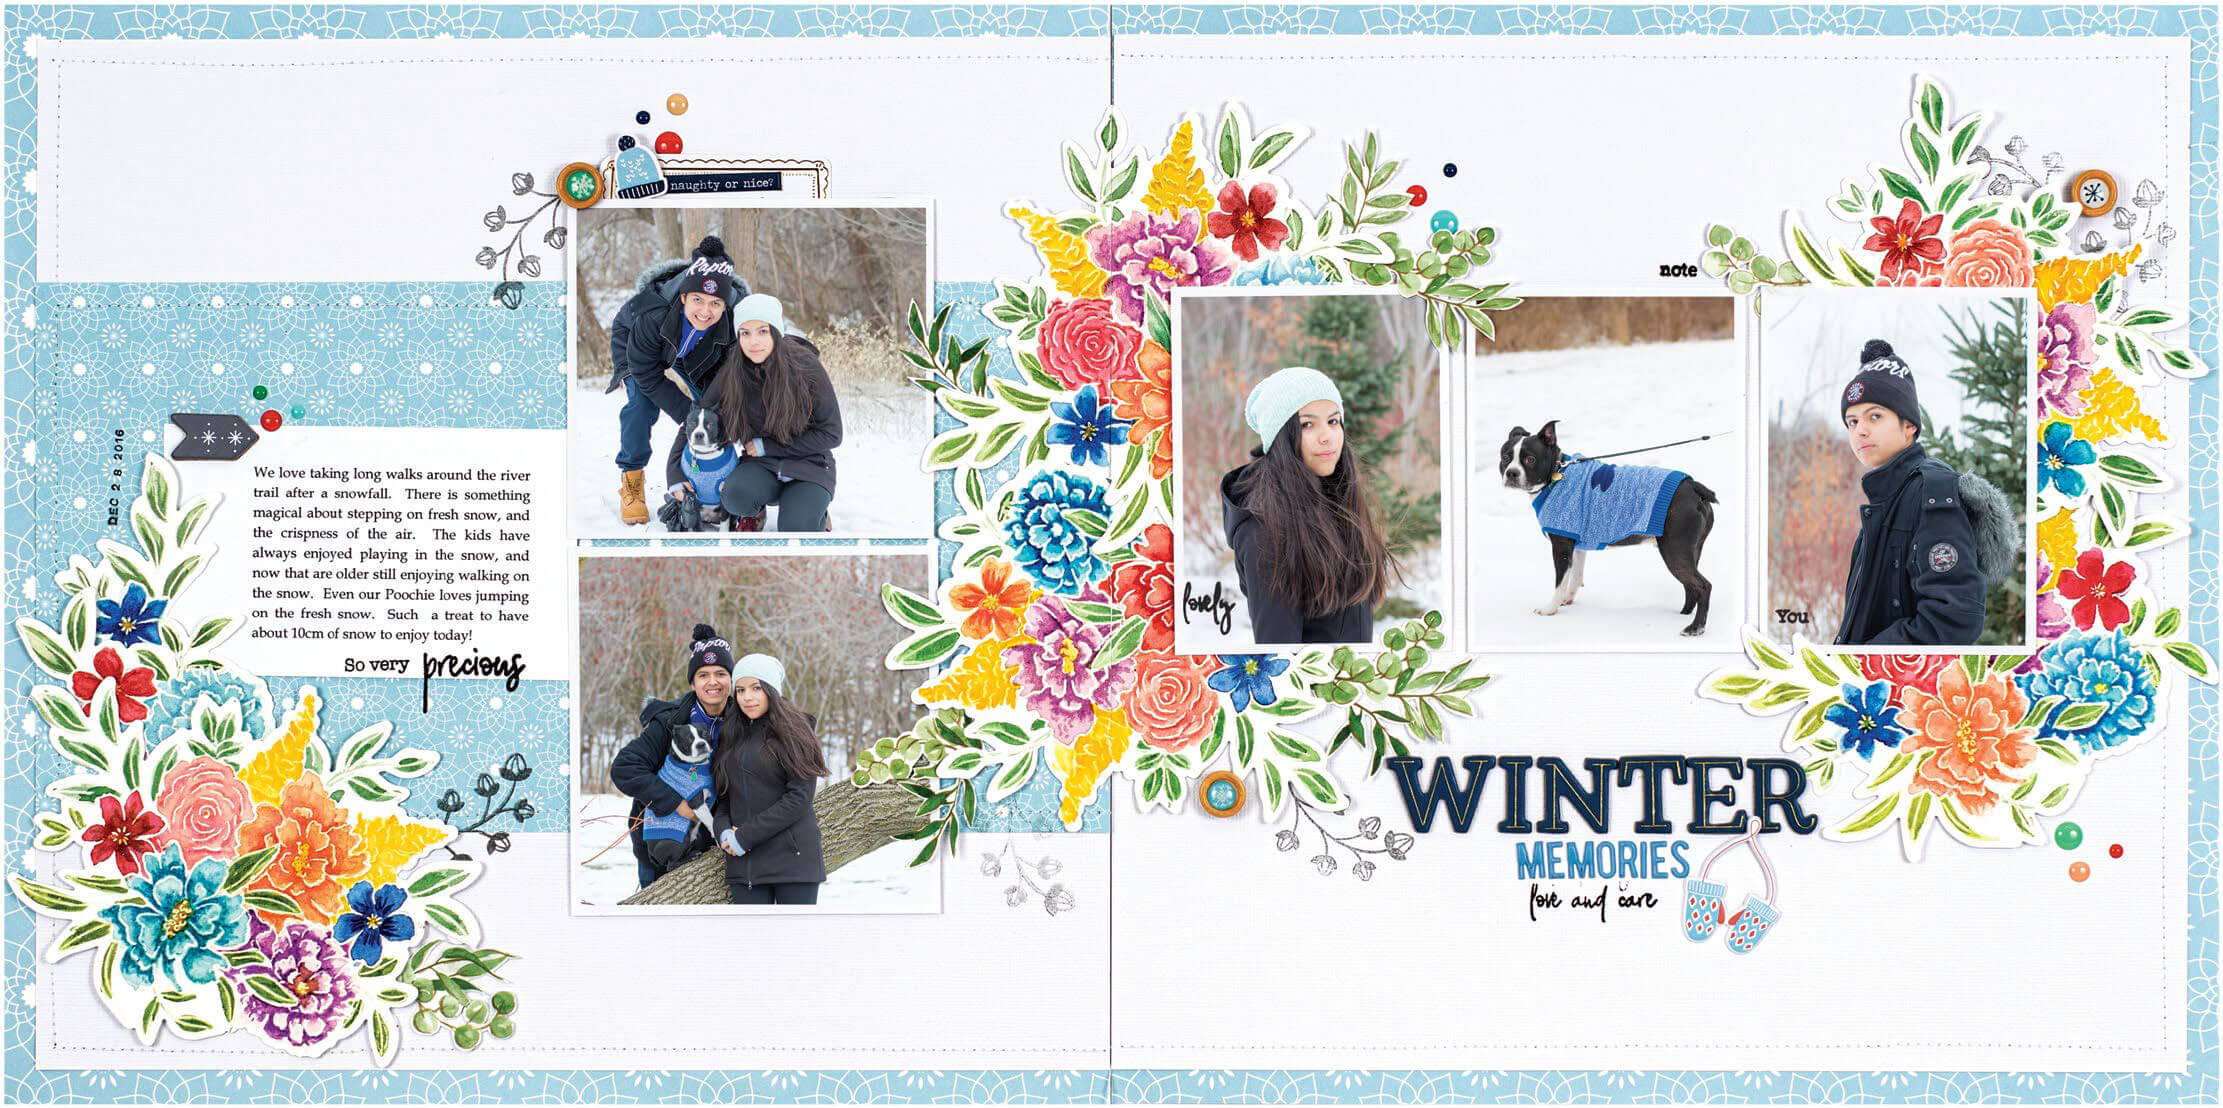 Scrapbook & Cards Today - Winter 2019 - Winter Memories layout by Nathalie DeSousa